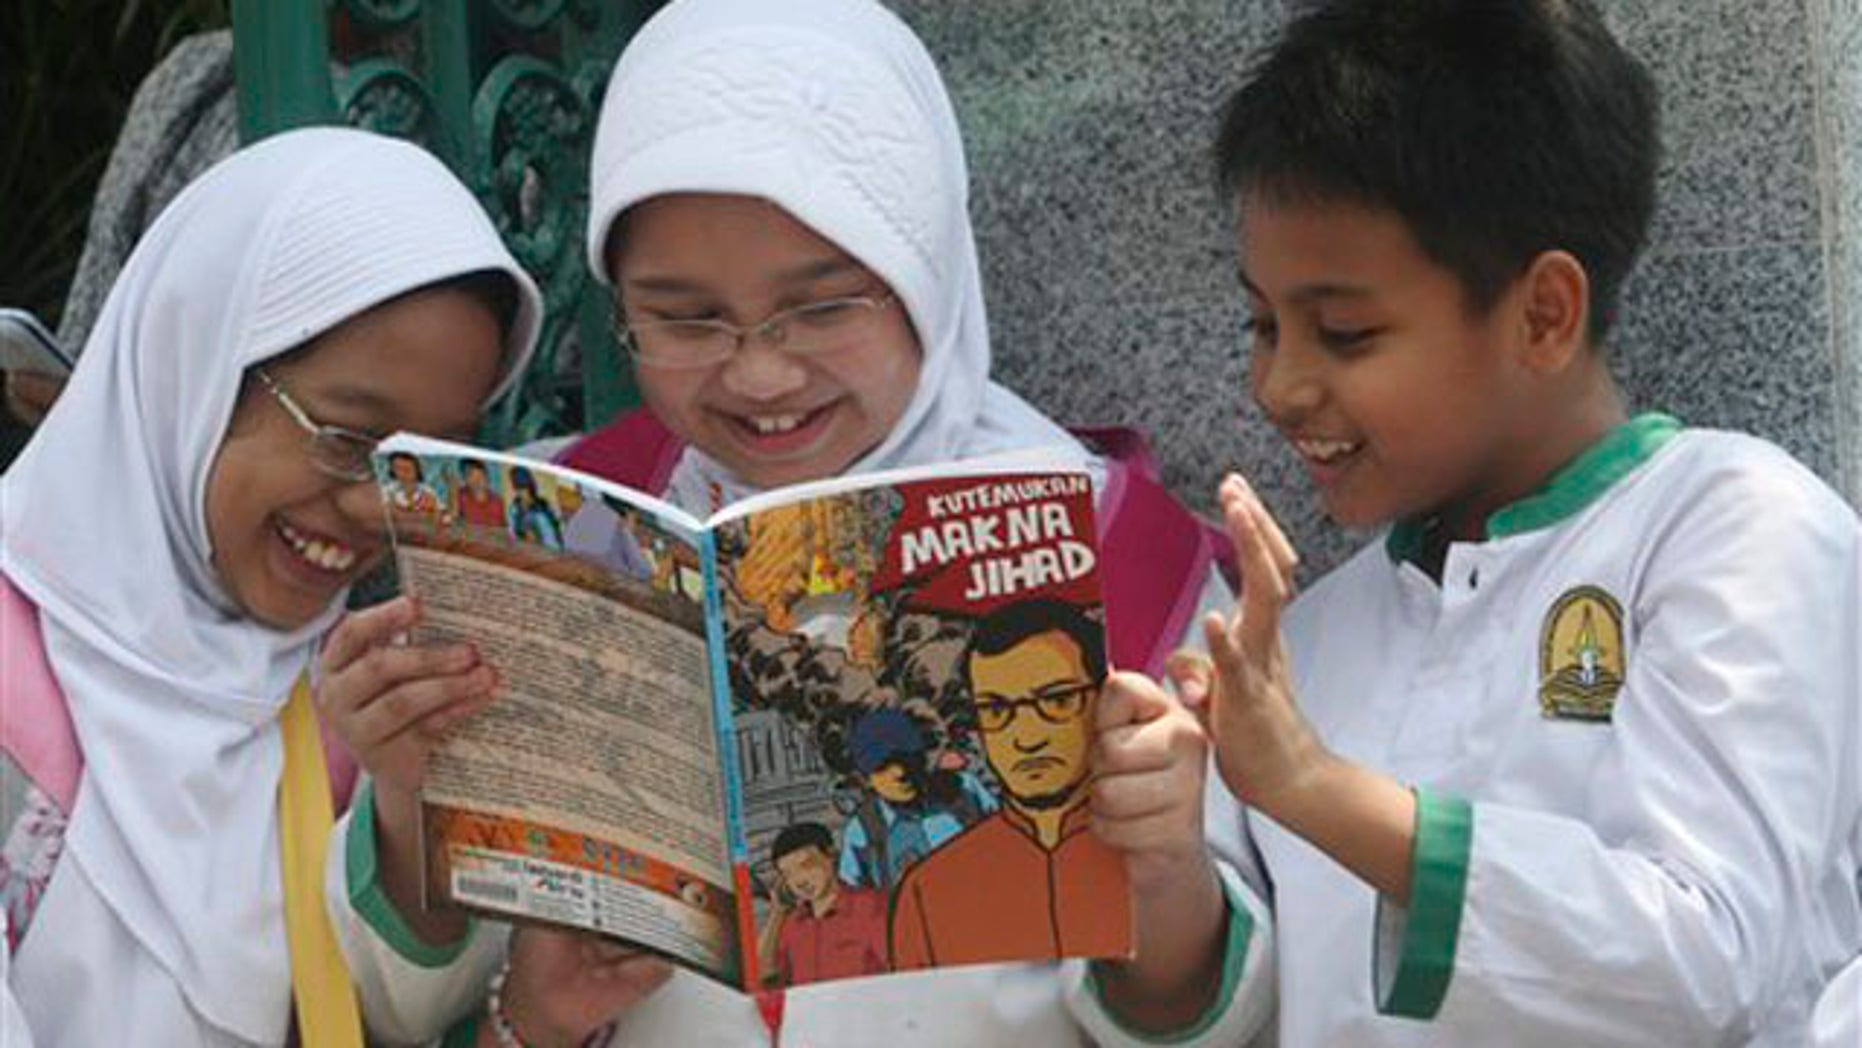 Students read a comic book with an anti-extremist theme at a primary school Friday, Sept. 9, 2011 in Jakarta, Indonesia.